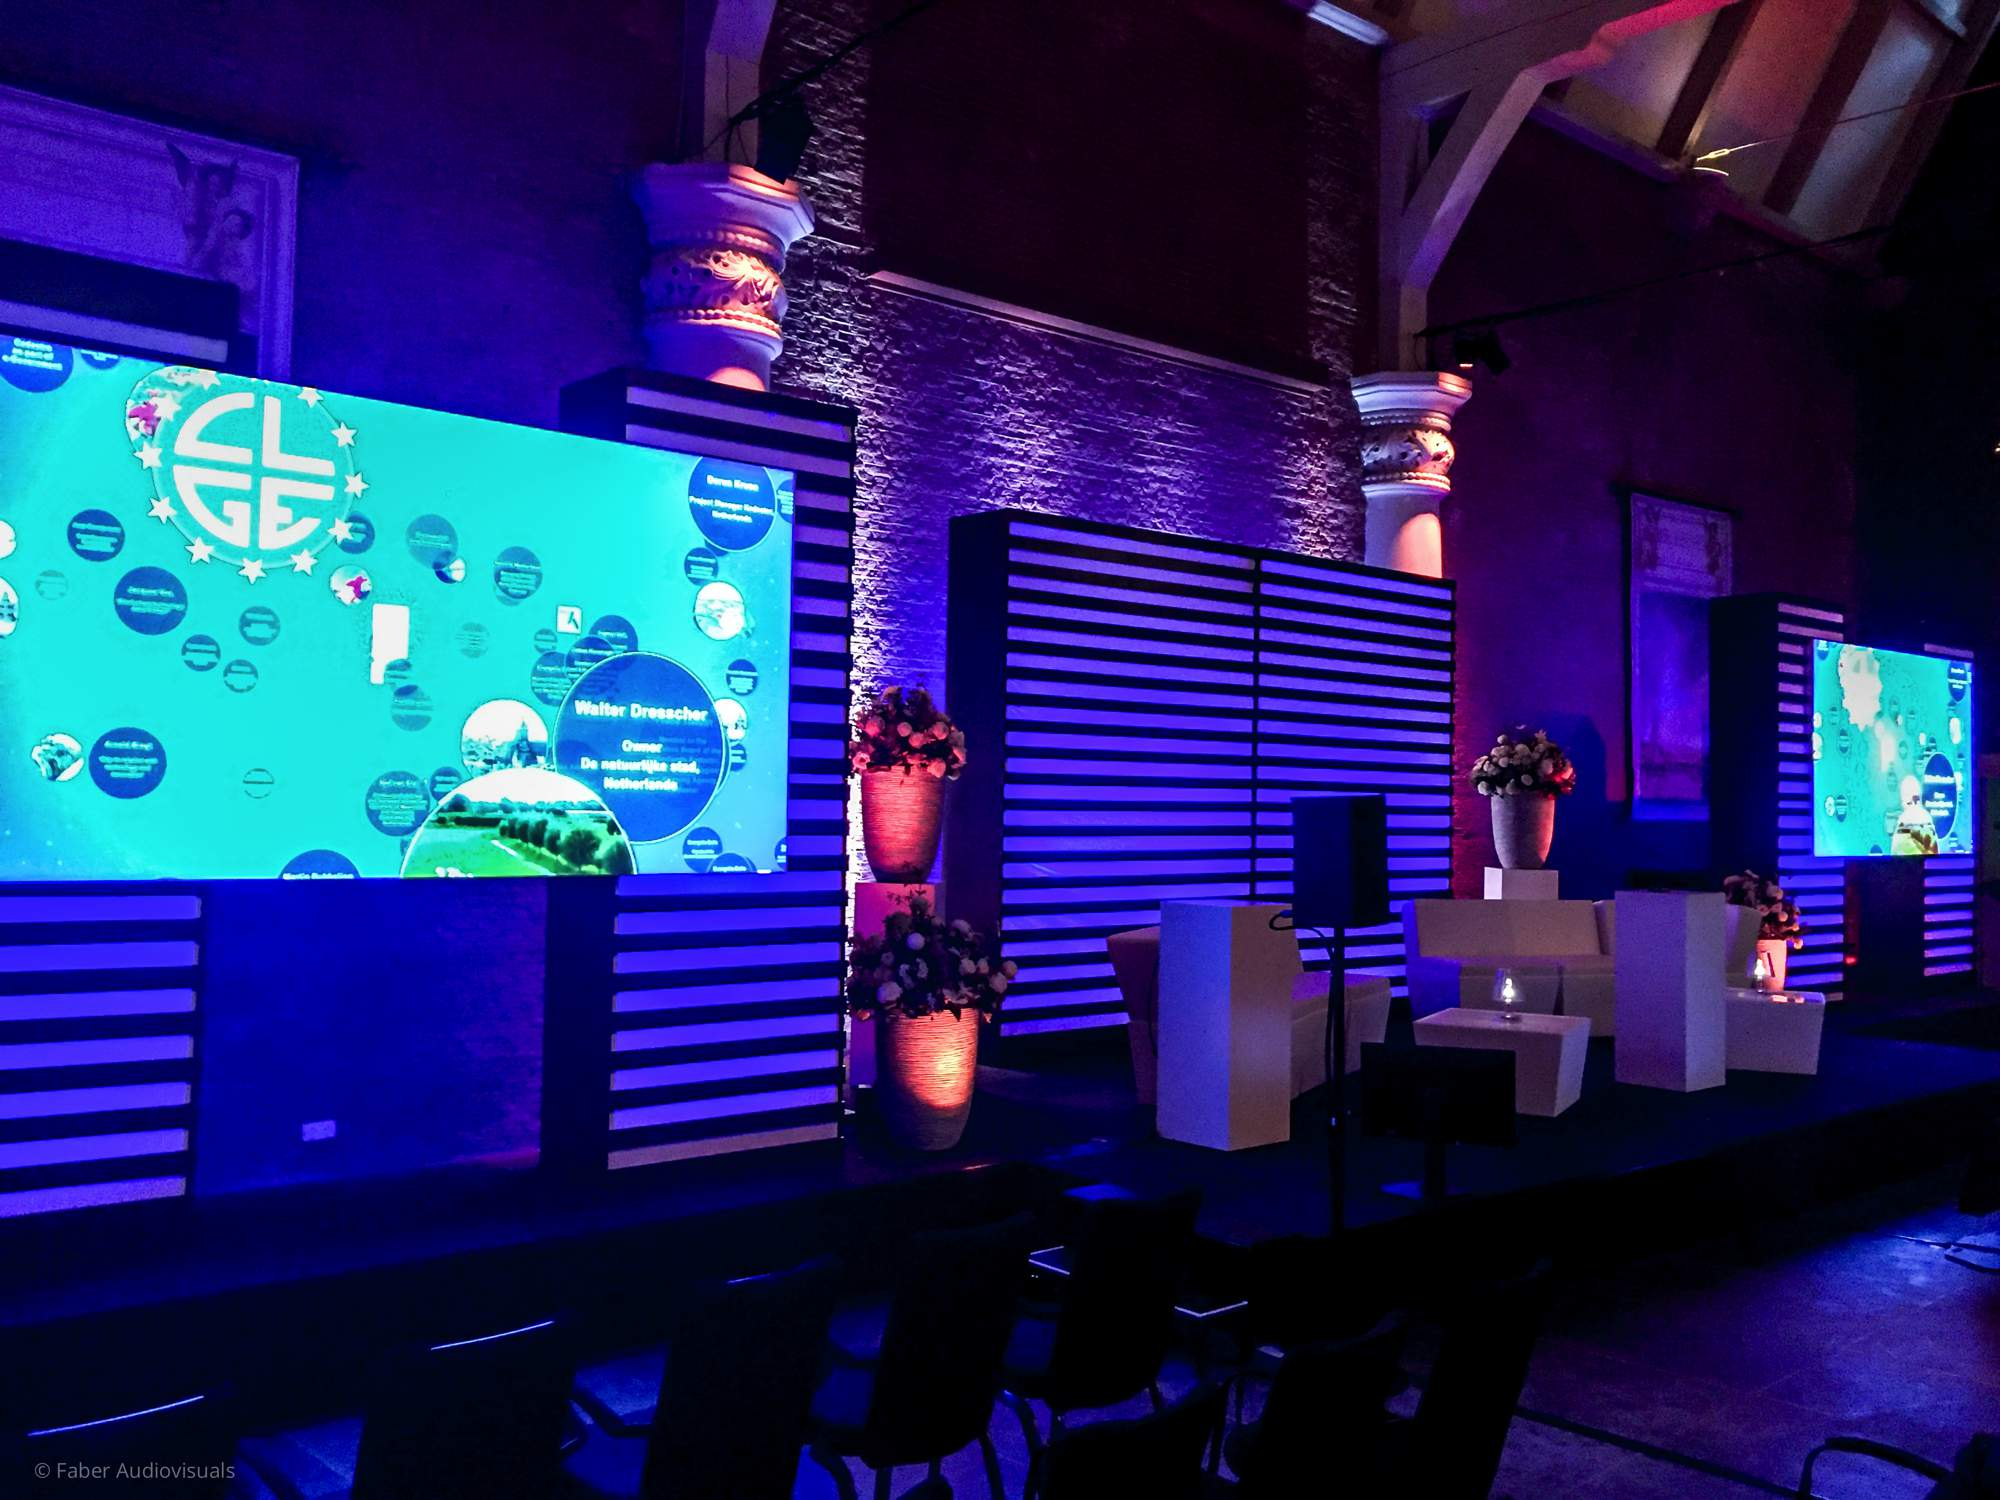 projection rental Screen rental includes  or complete the reservation request below and a funflicks® team member will  movie projection systems and audio options allows.